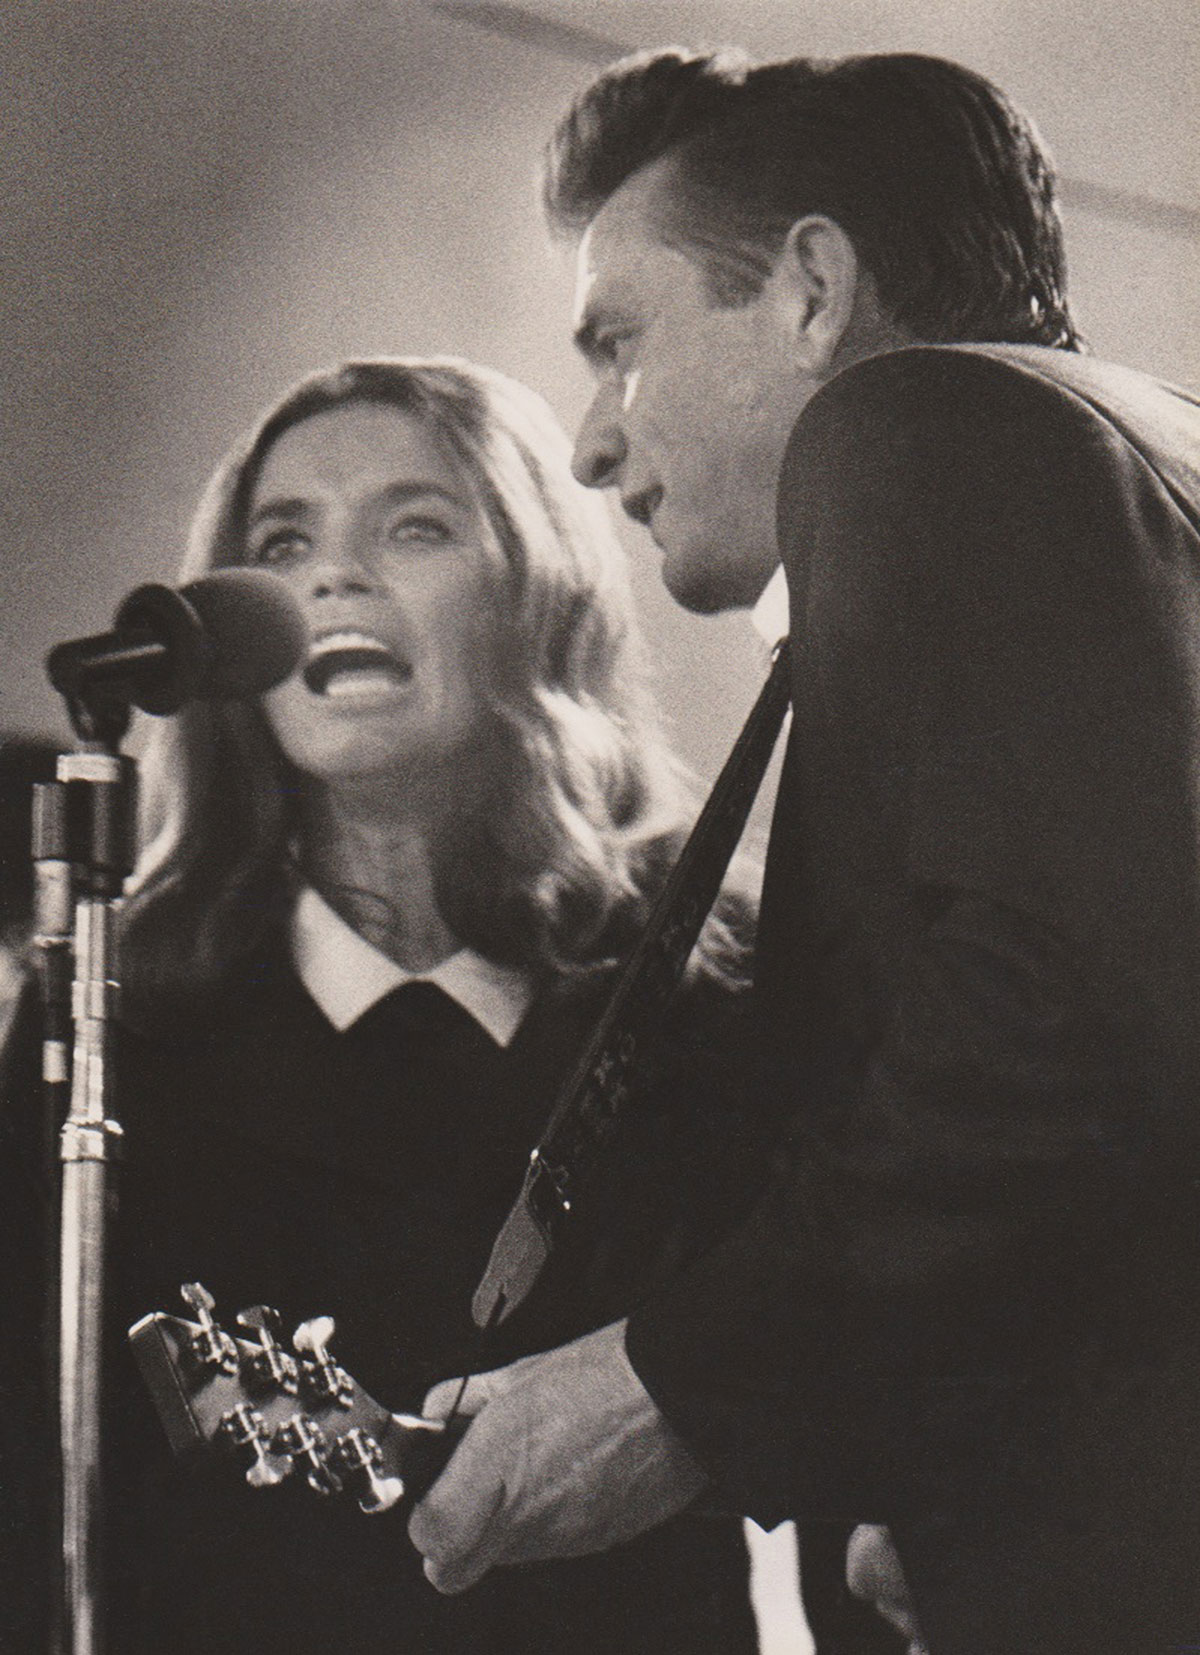 June Carter and Johnny Cash perform at Folsom Prison